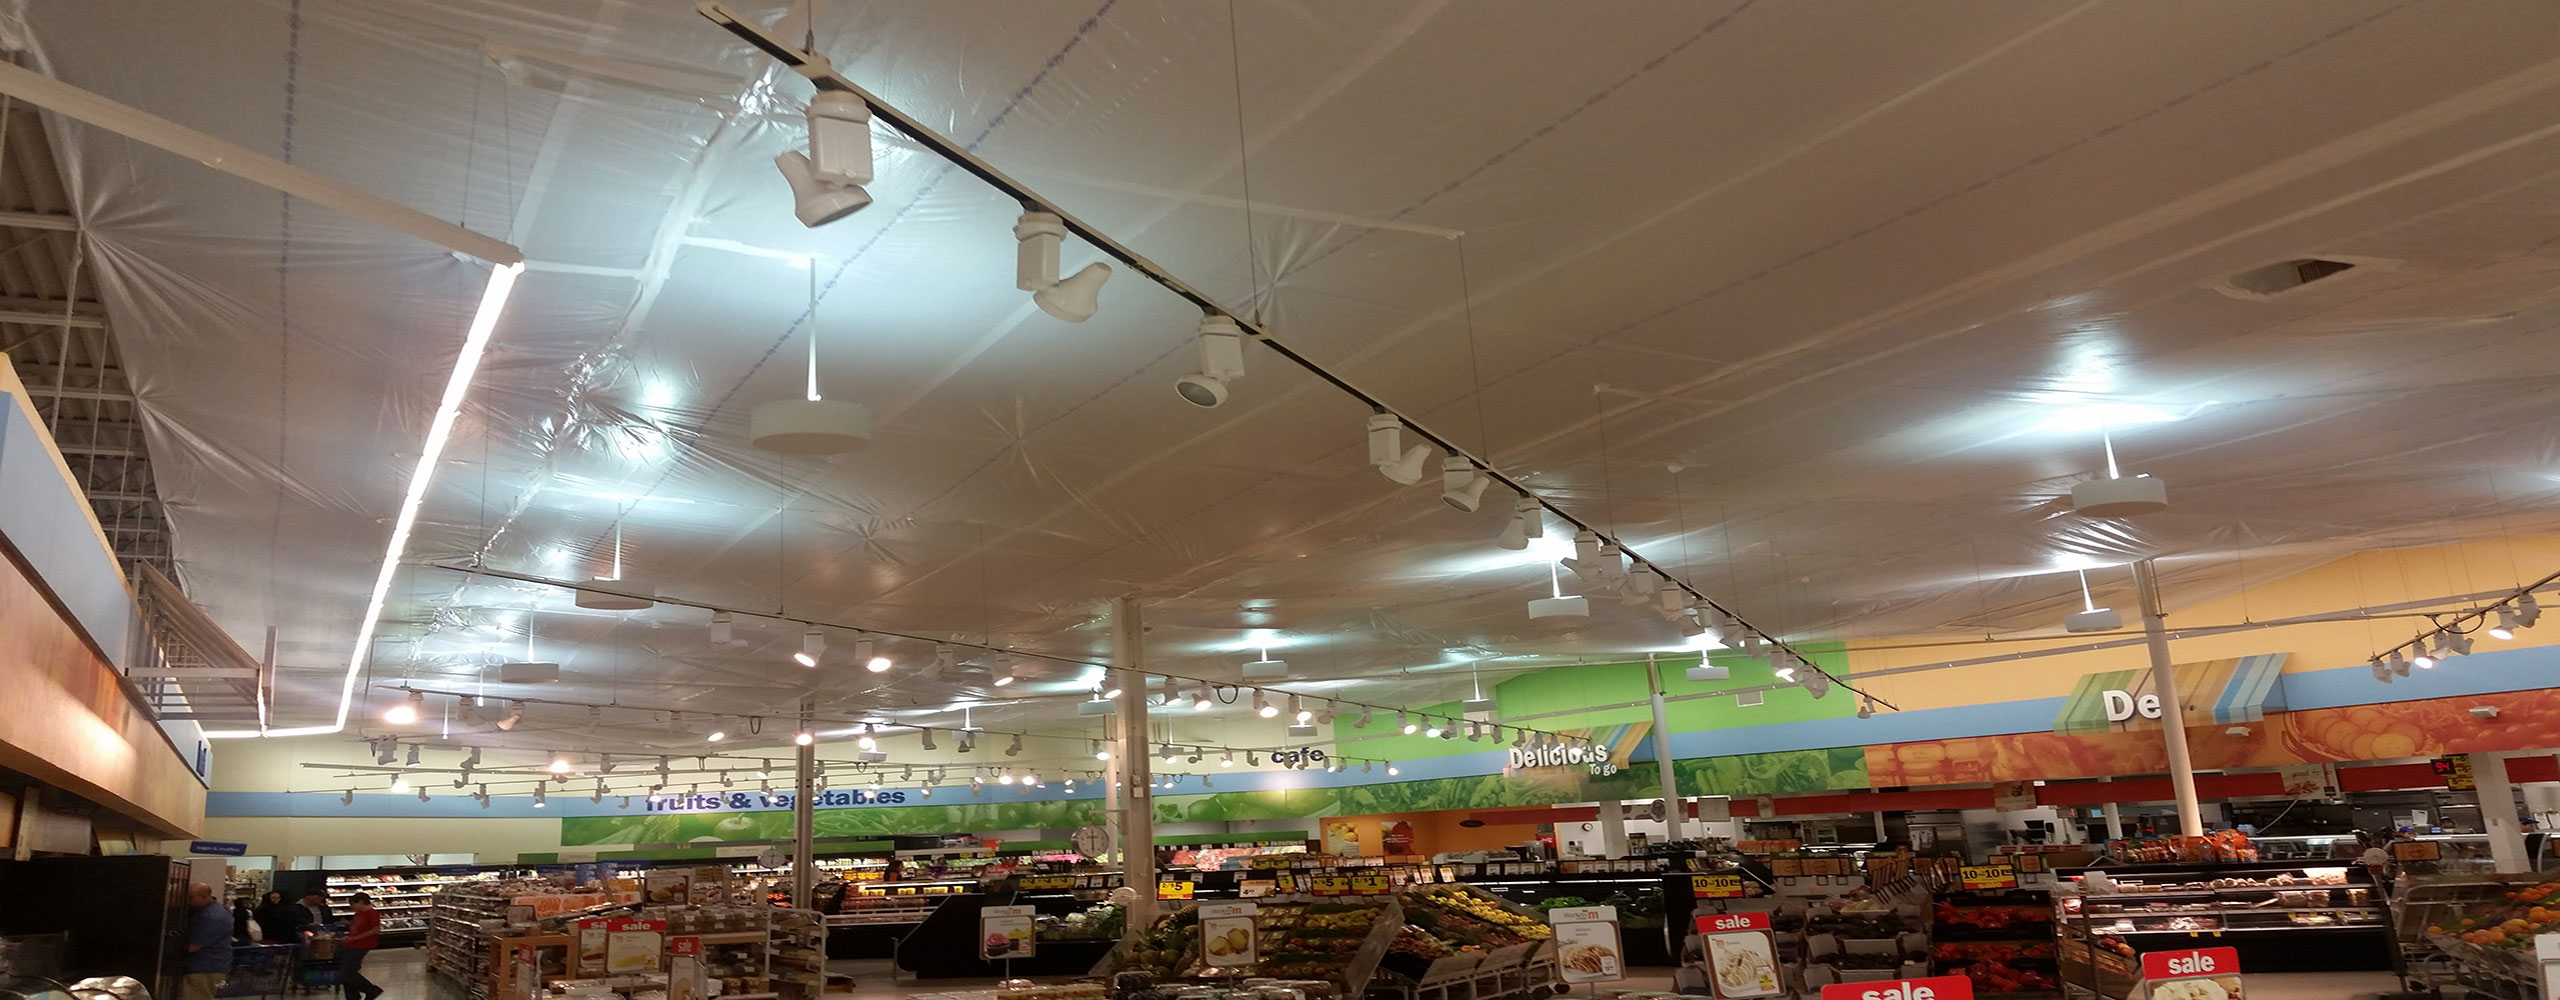 sprinkler seam systems installed in grocery store